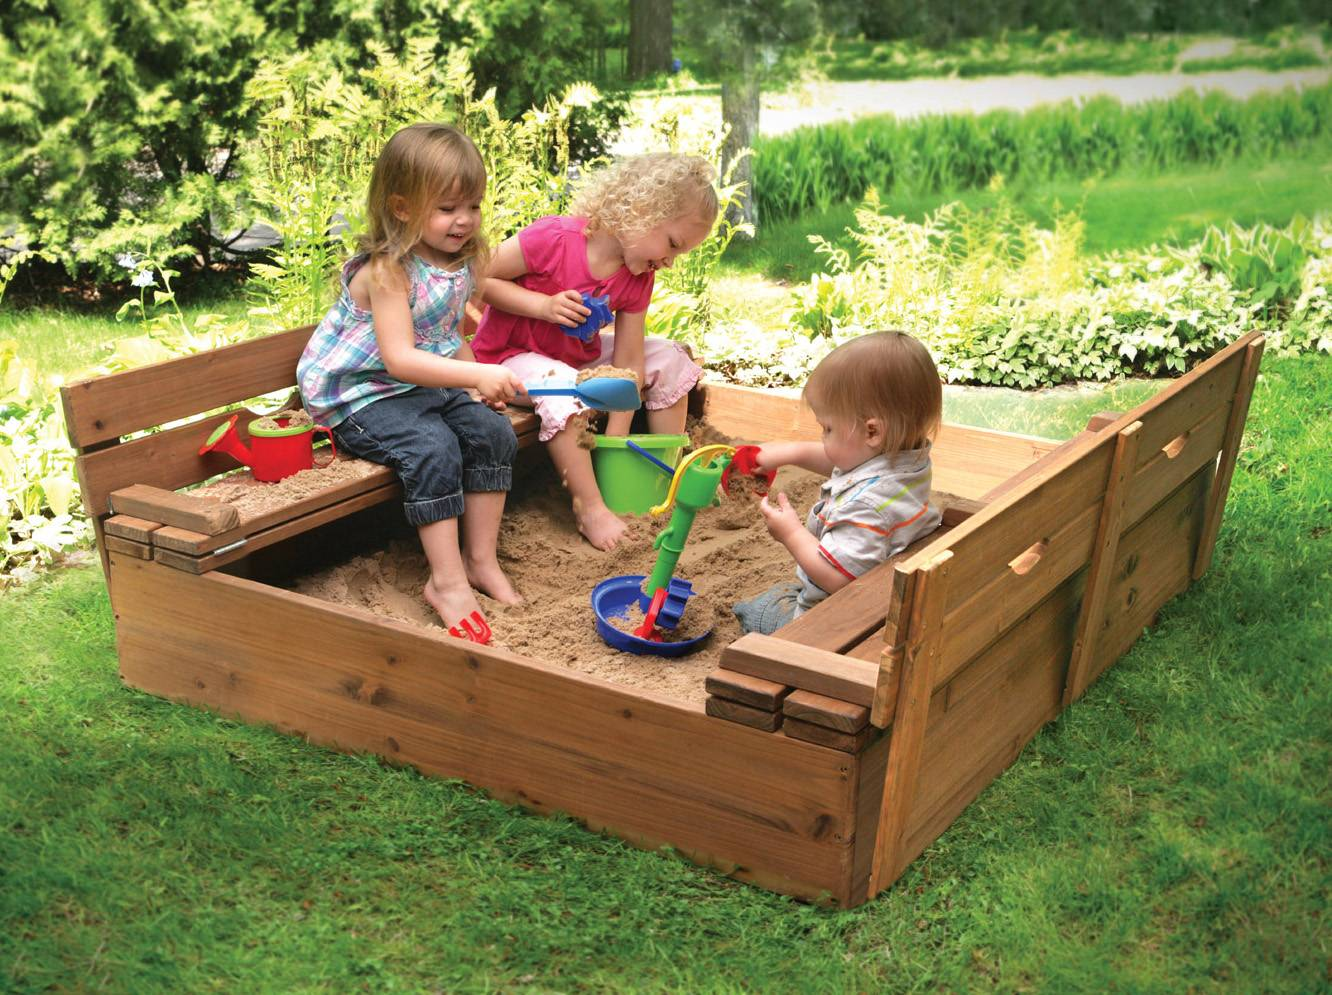 5 simple ideas to make your backyard fun and kid friendly